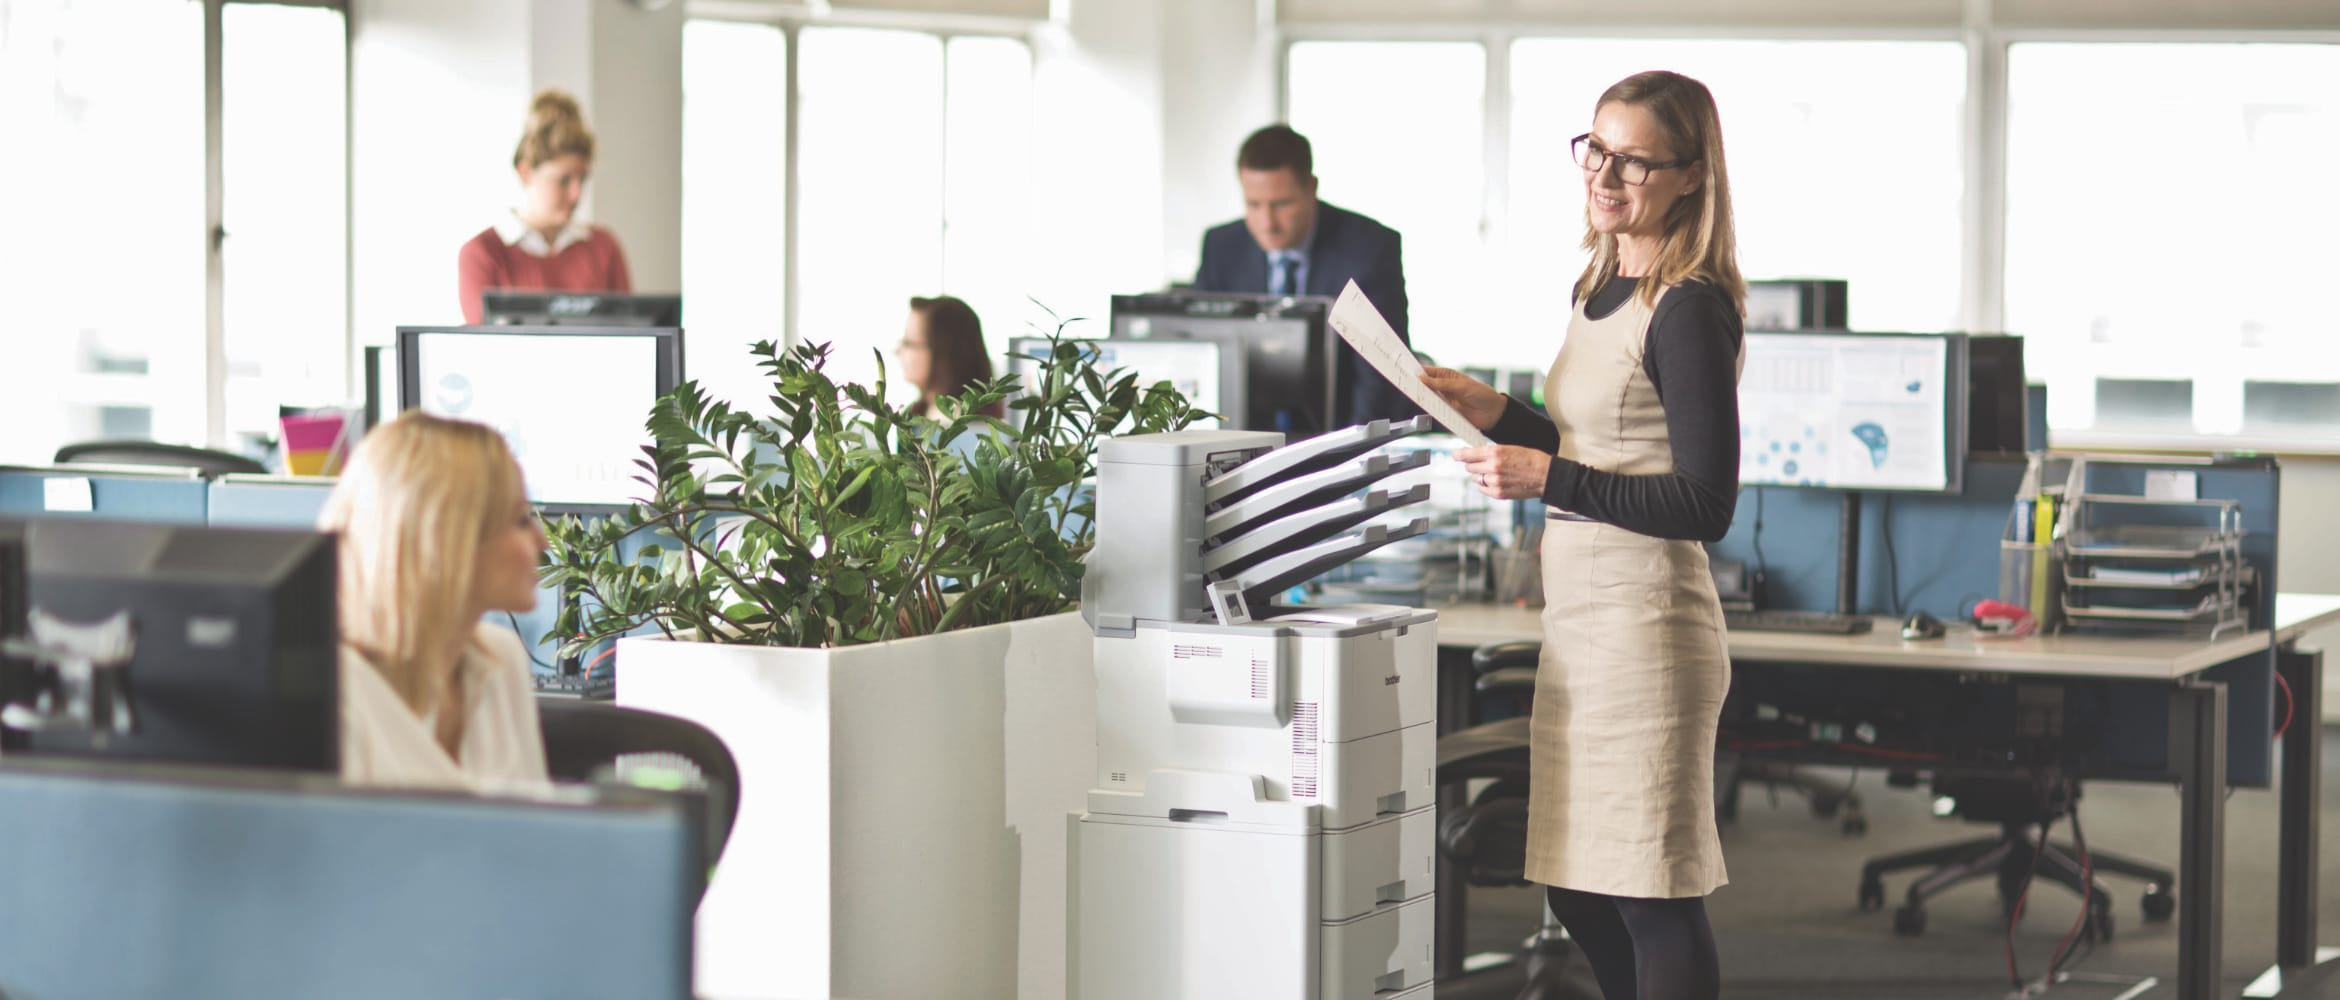 Lady talking to a female colleague while using a Brother HL-L6400DW mono laser workgroup printer in a busy office environment